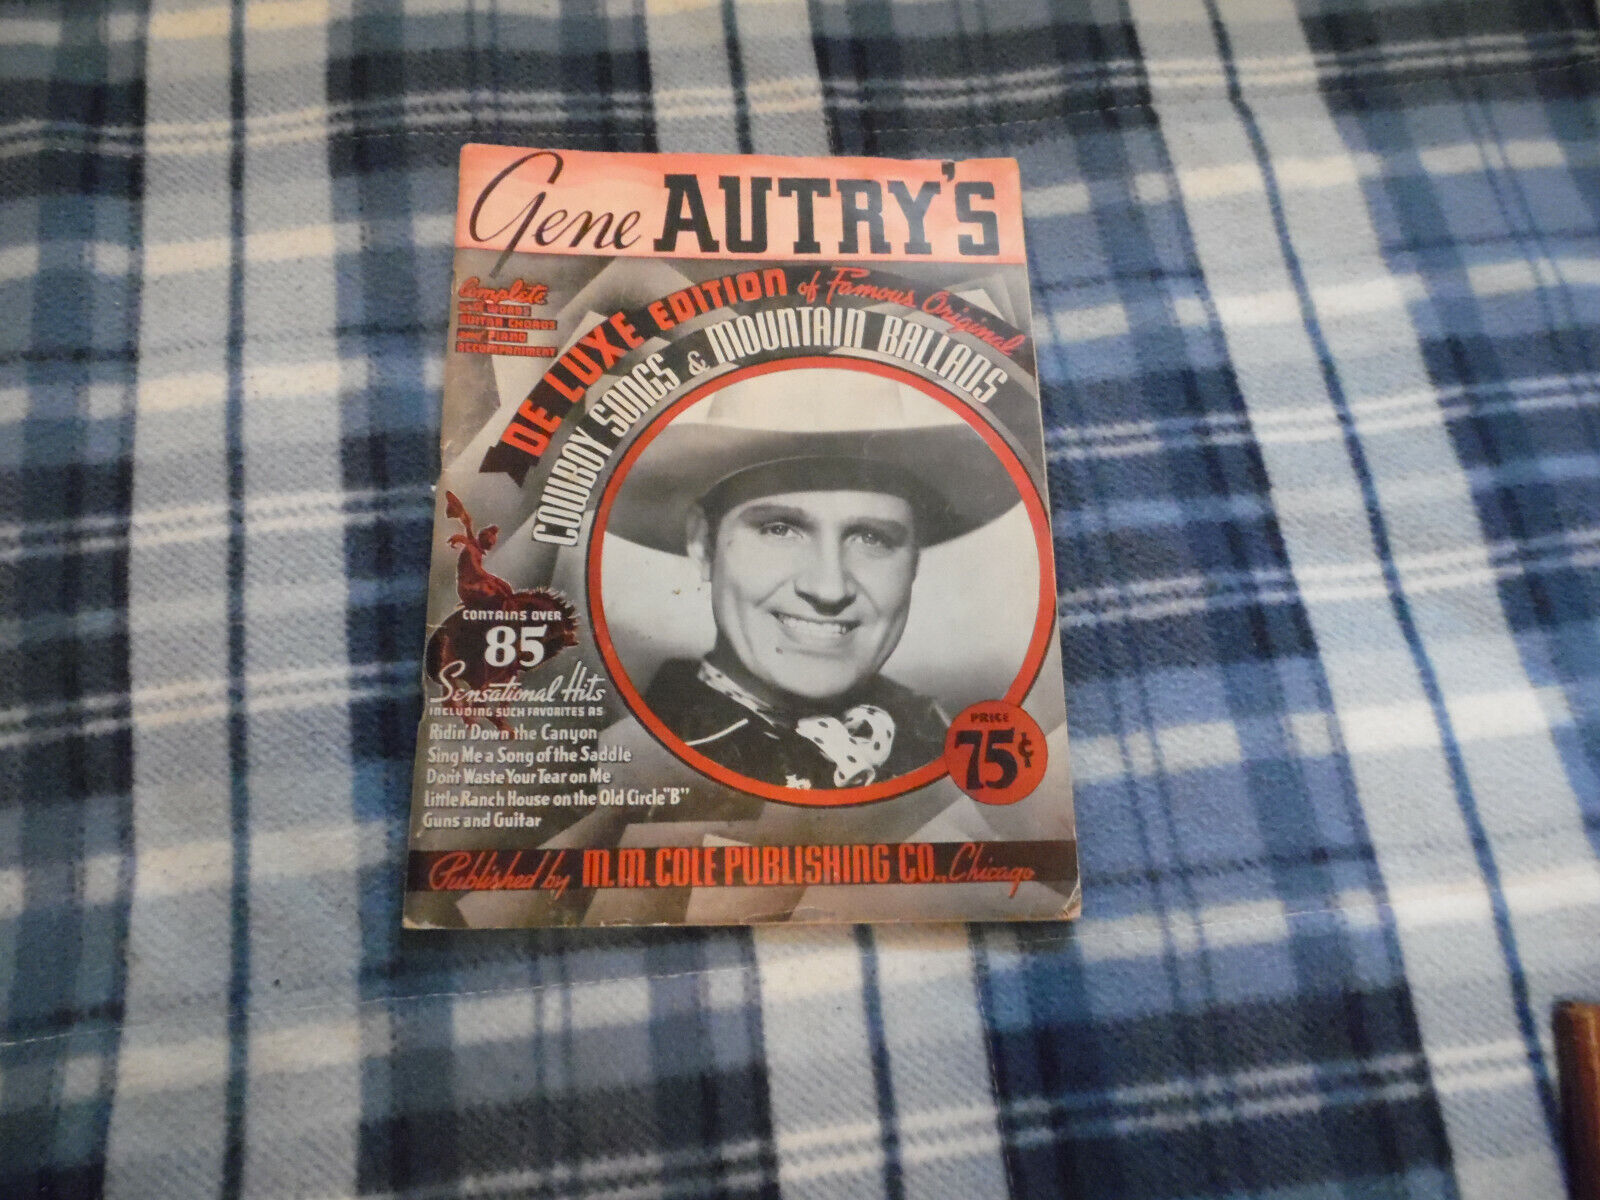 Gene Autry Sings Deluxe Edition Cowboy Songs Mountain Ballads - $5.00